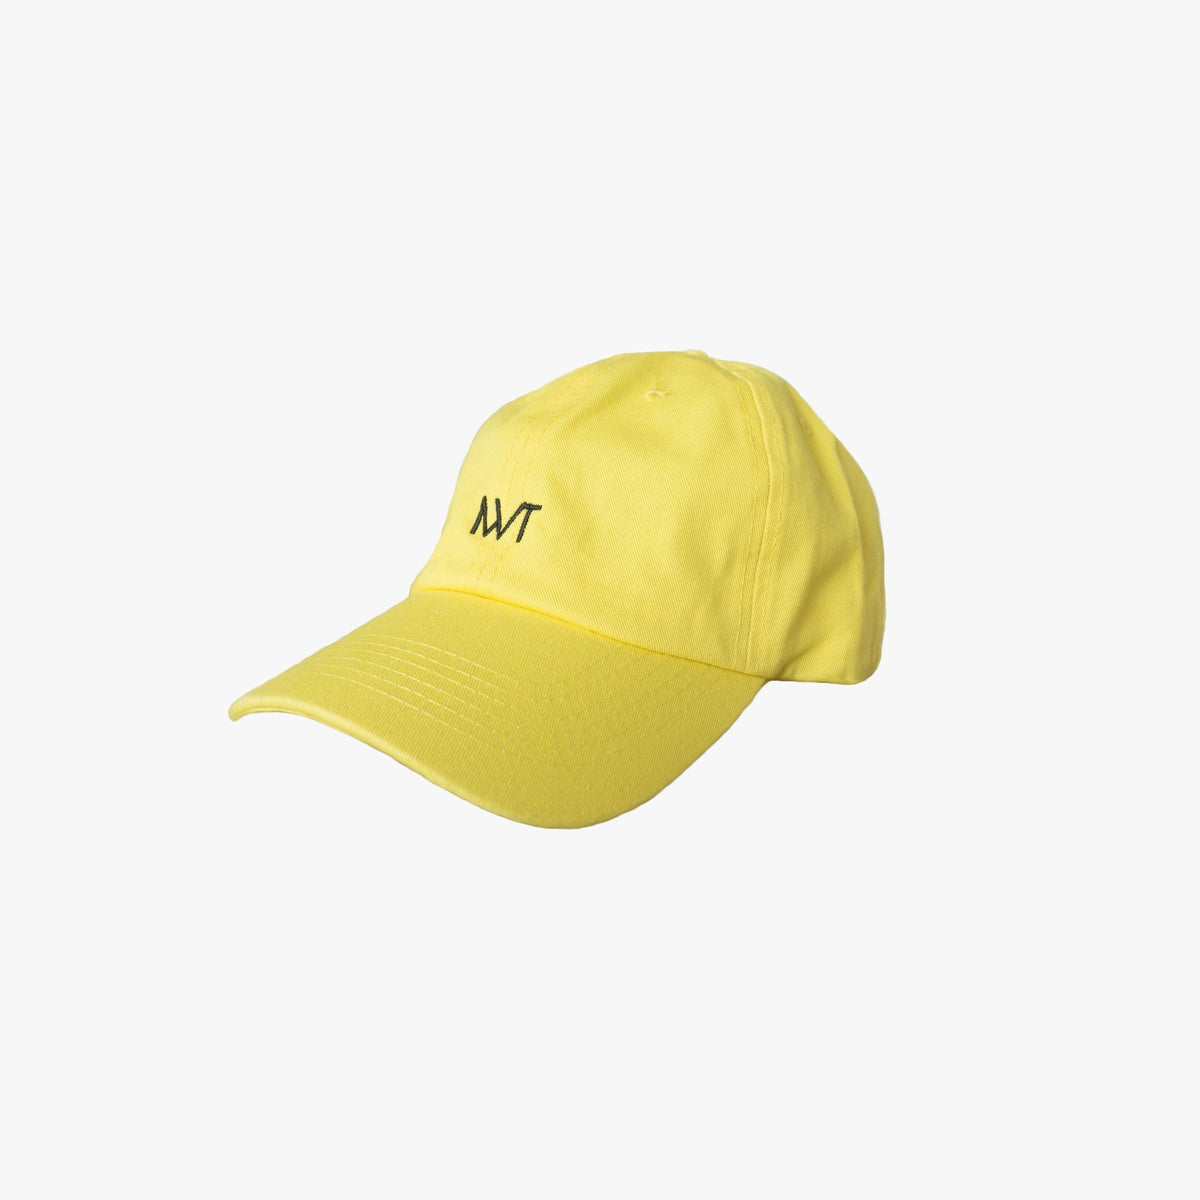 MVT Dad Cap - YELLOW